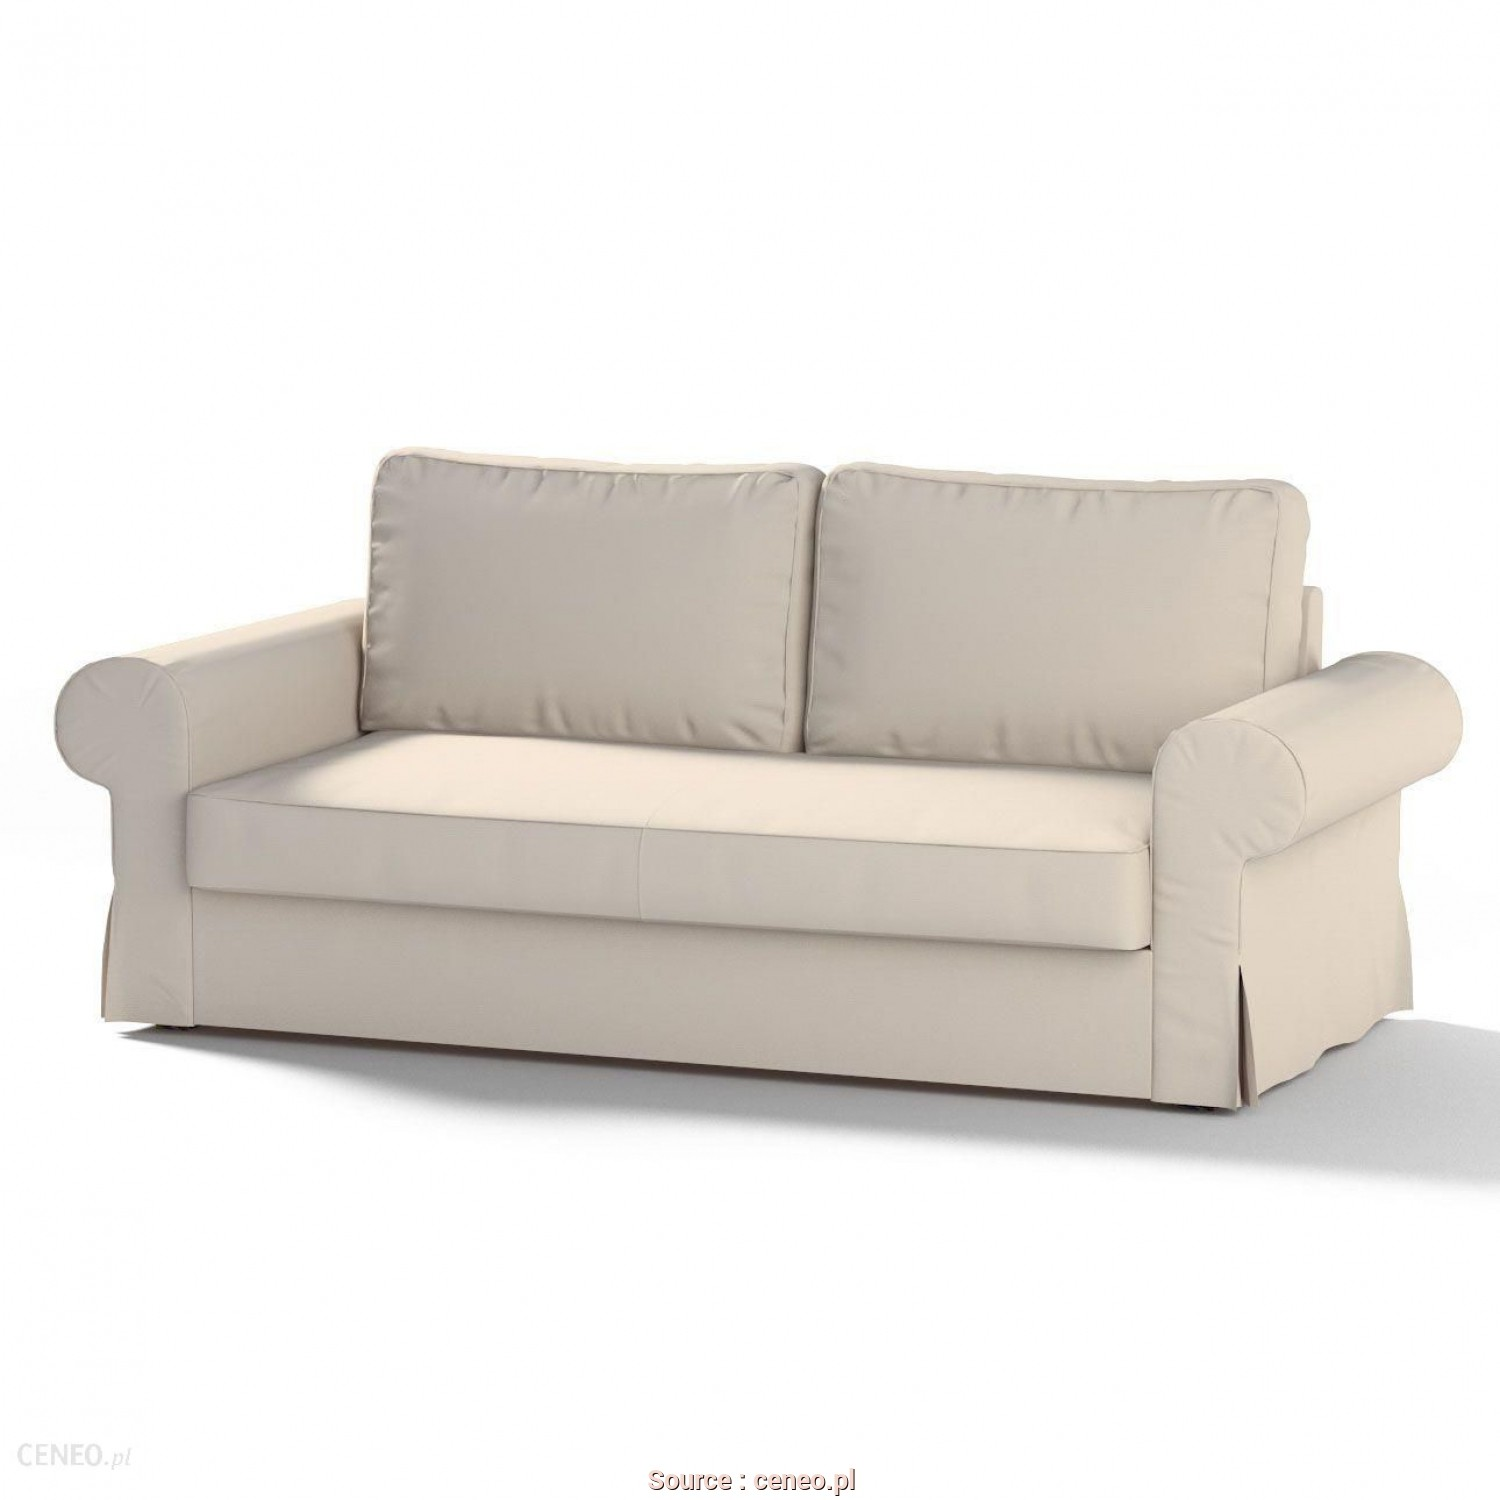 Canape Ikea Backabro 3 Places Ikea Couch Bed